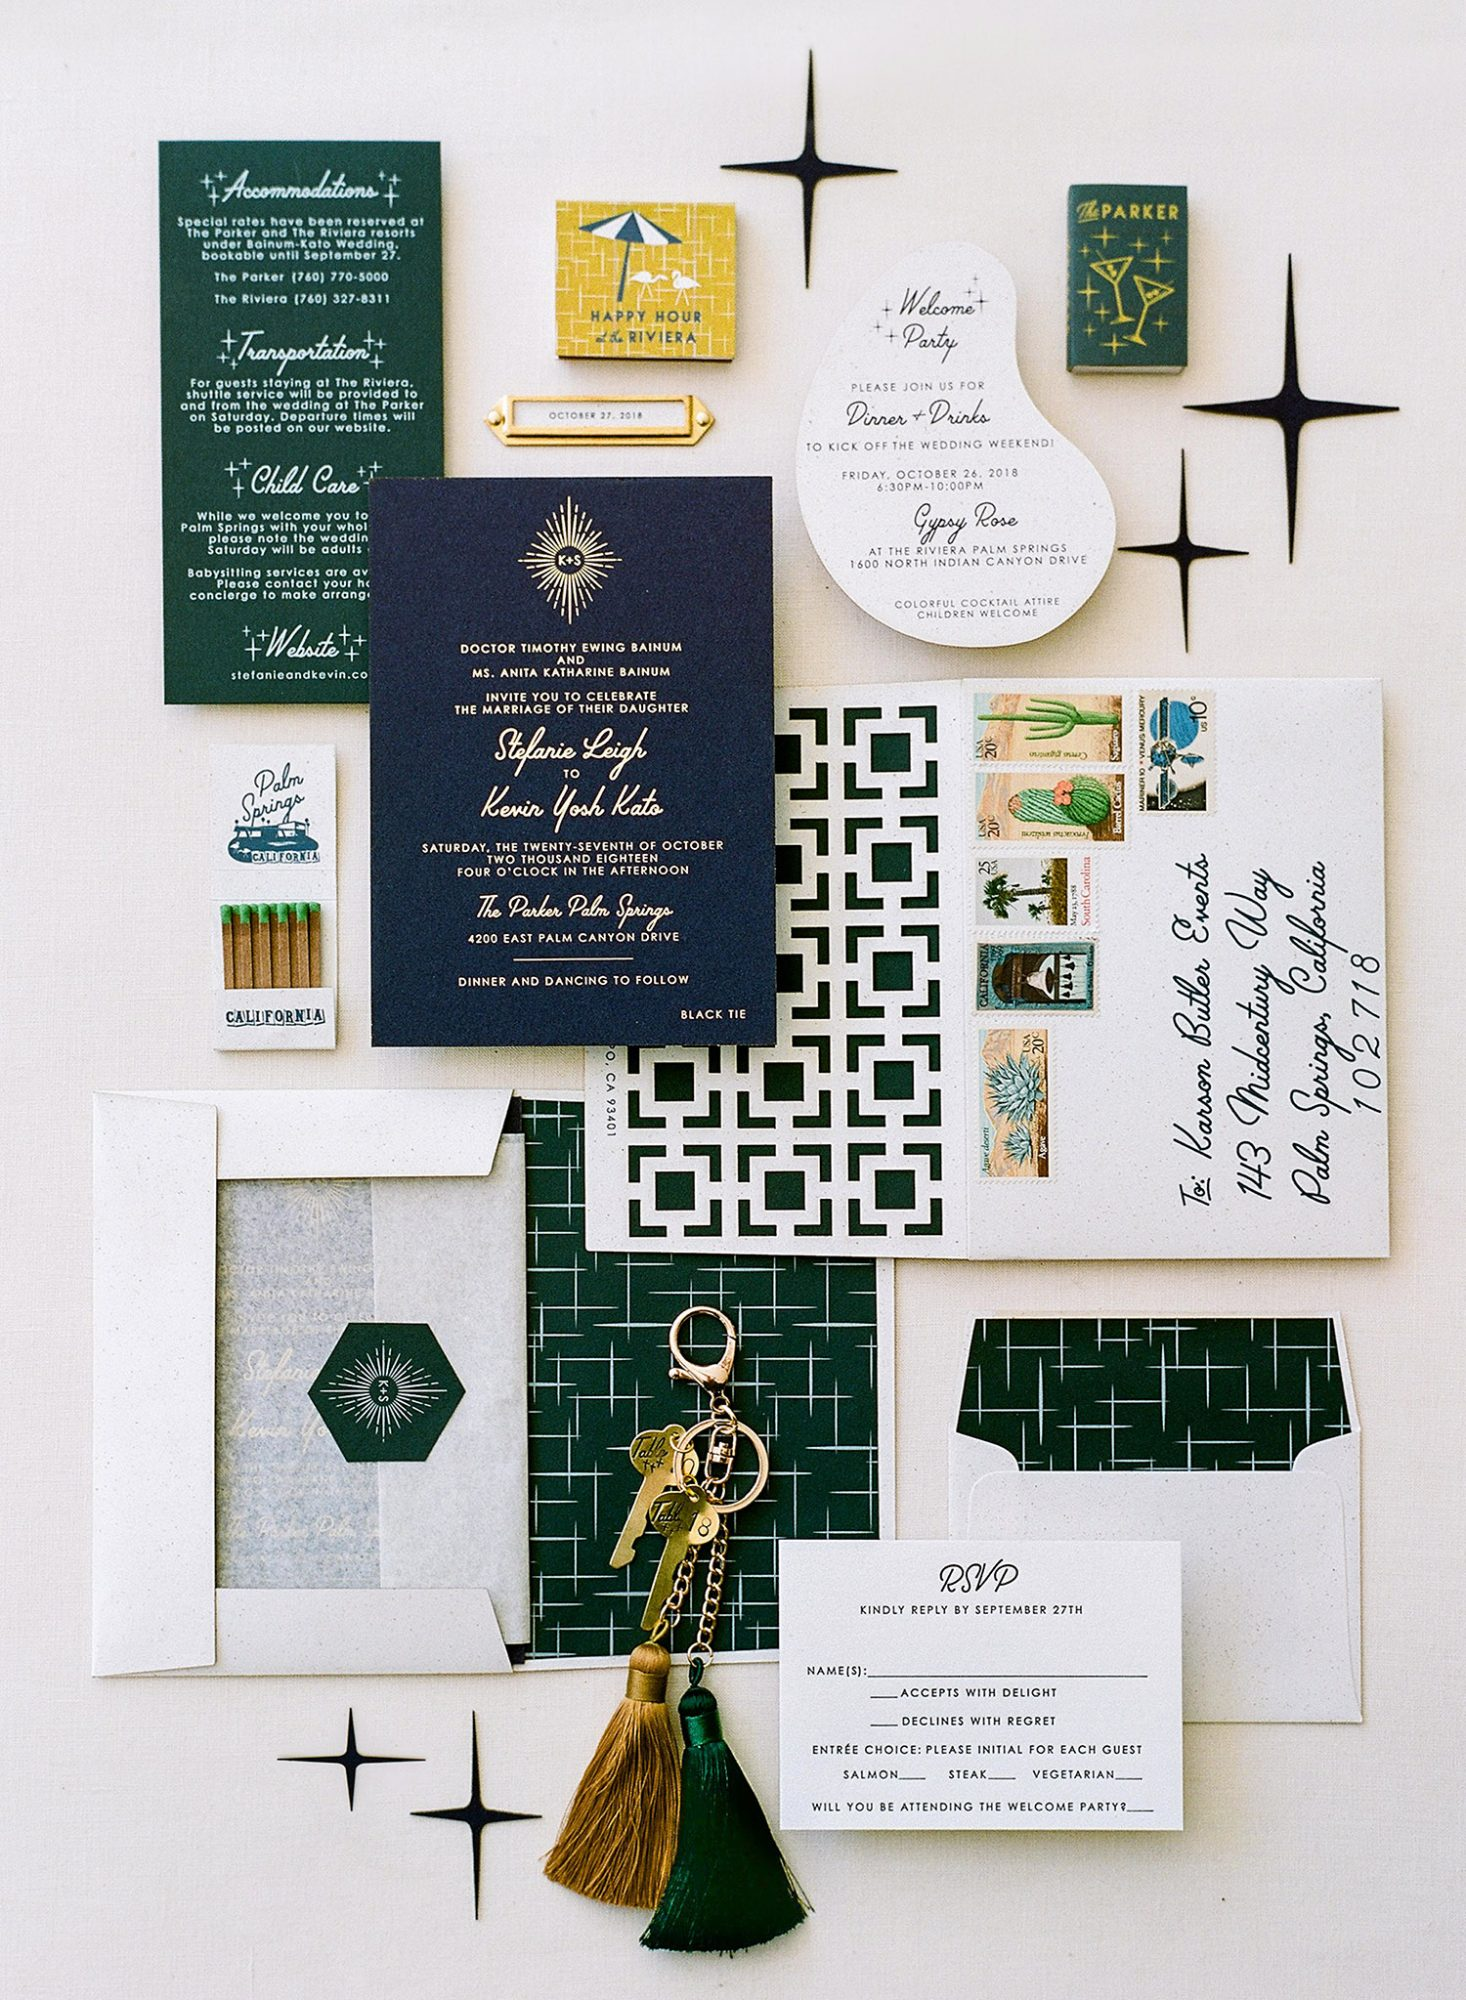 Stefanie Kevin Wedding Invitations and Stationery